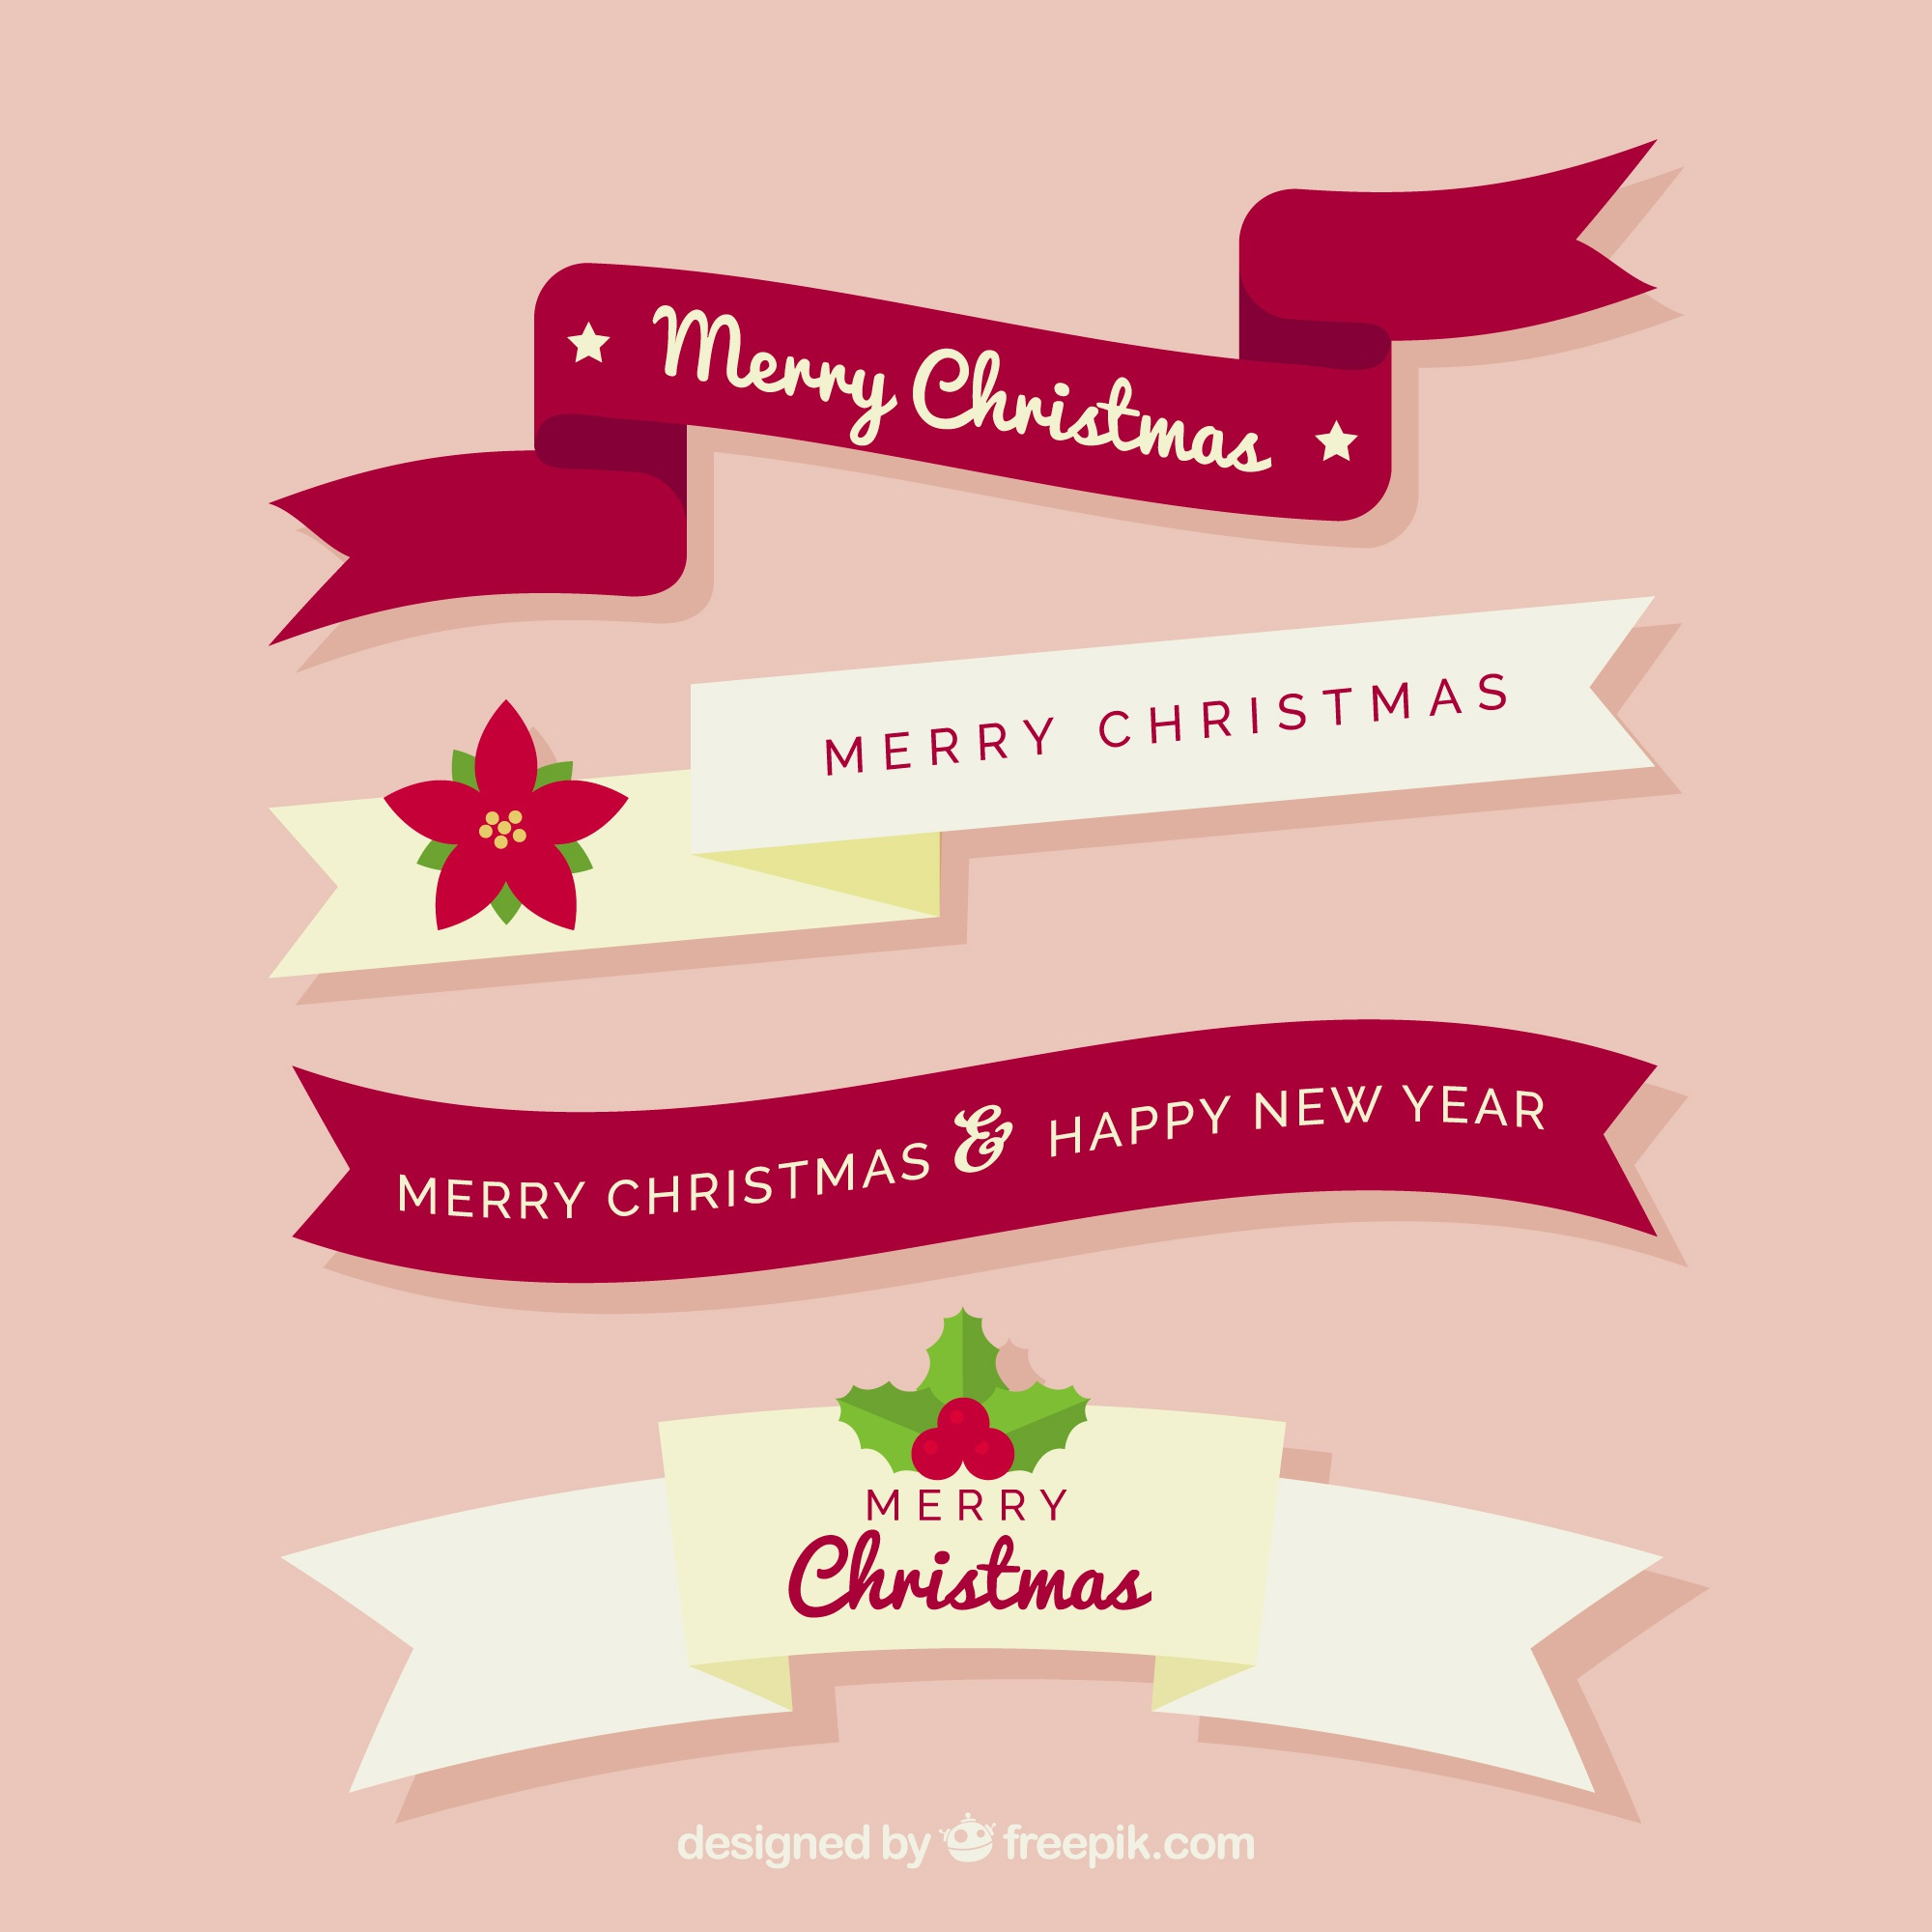 Pack of decorative ribbons of merry christmas in flat design